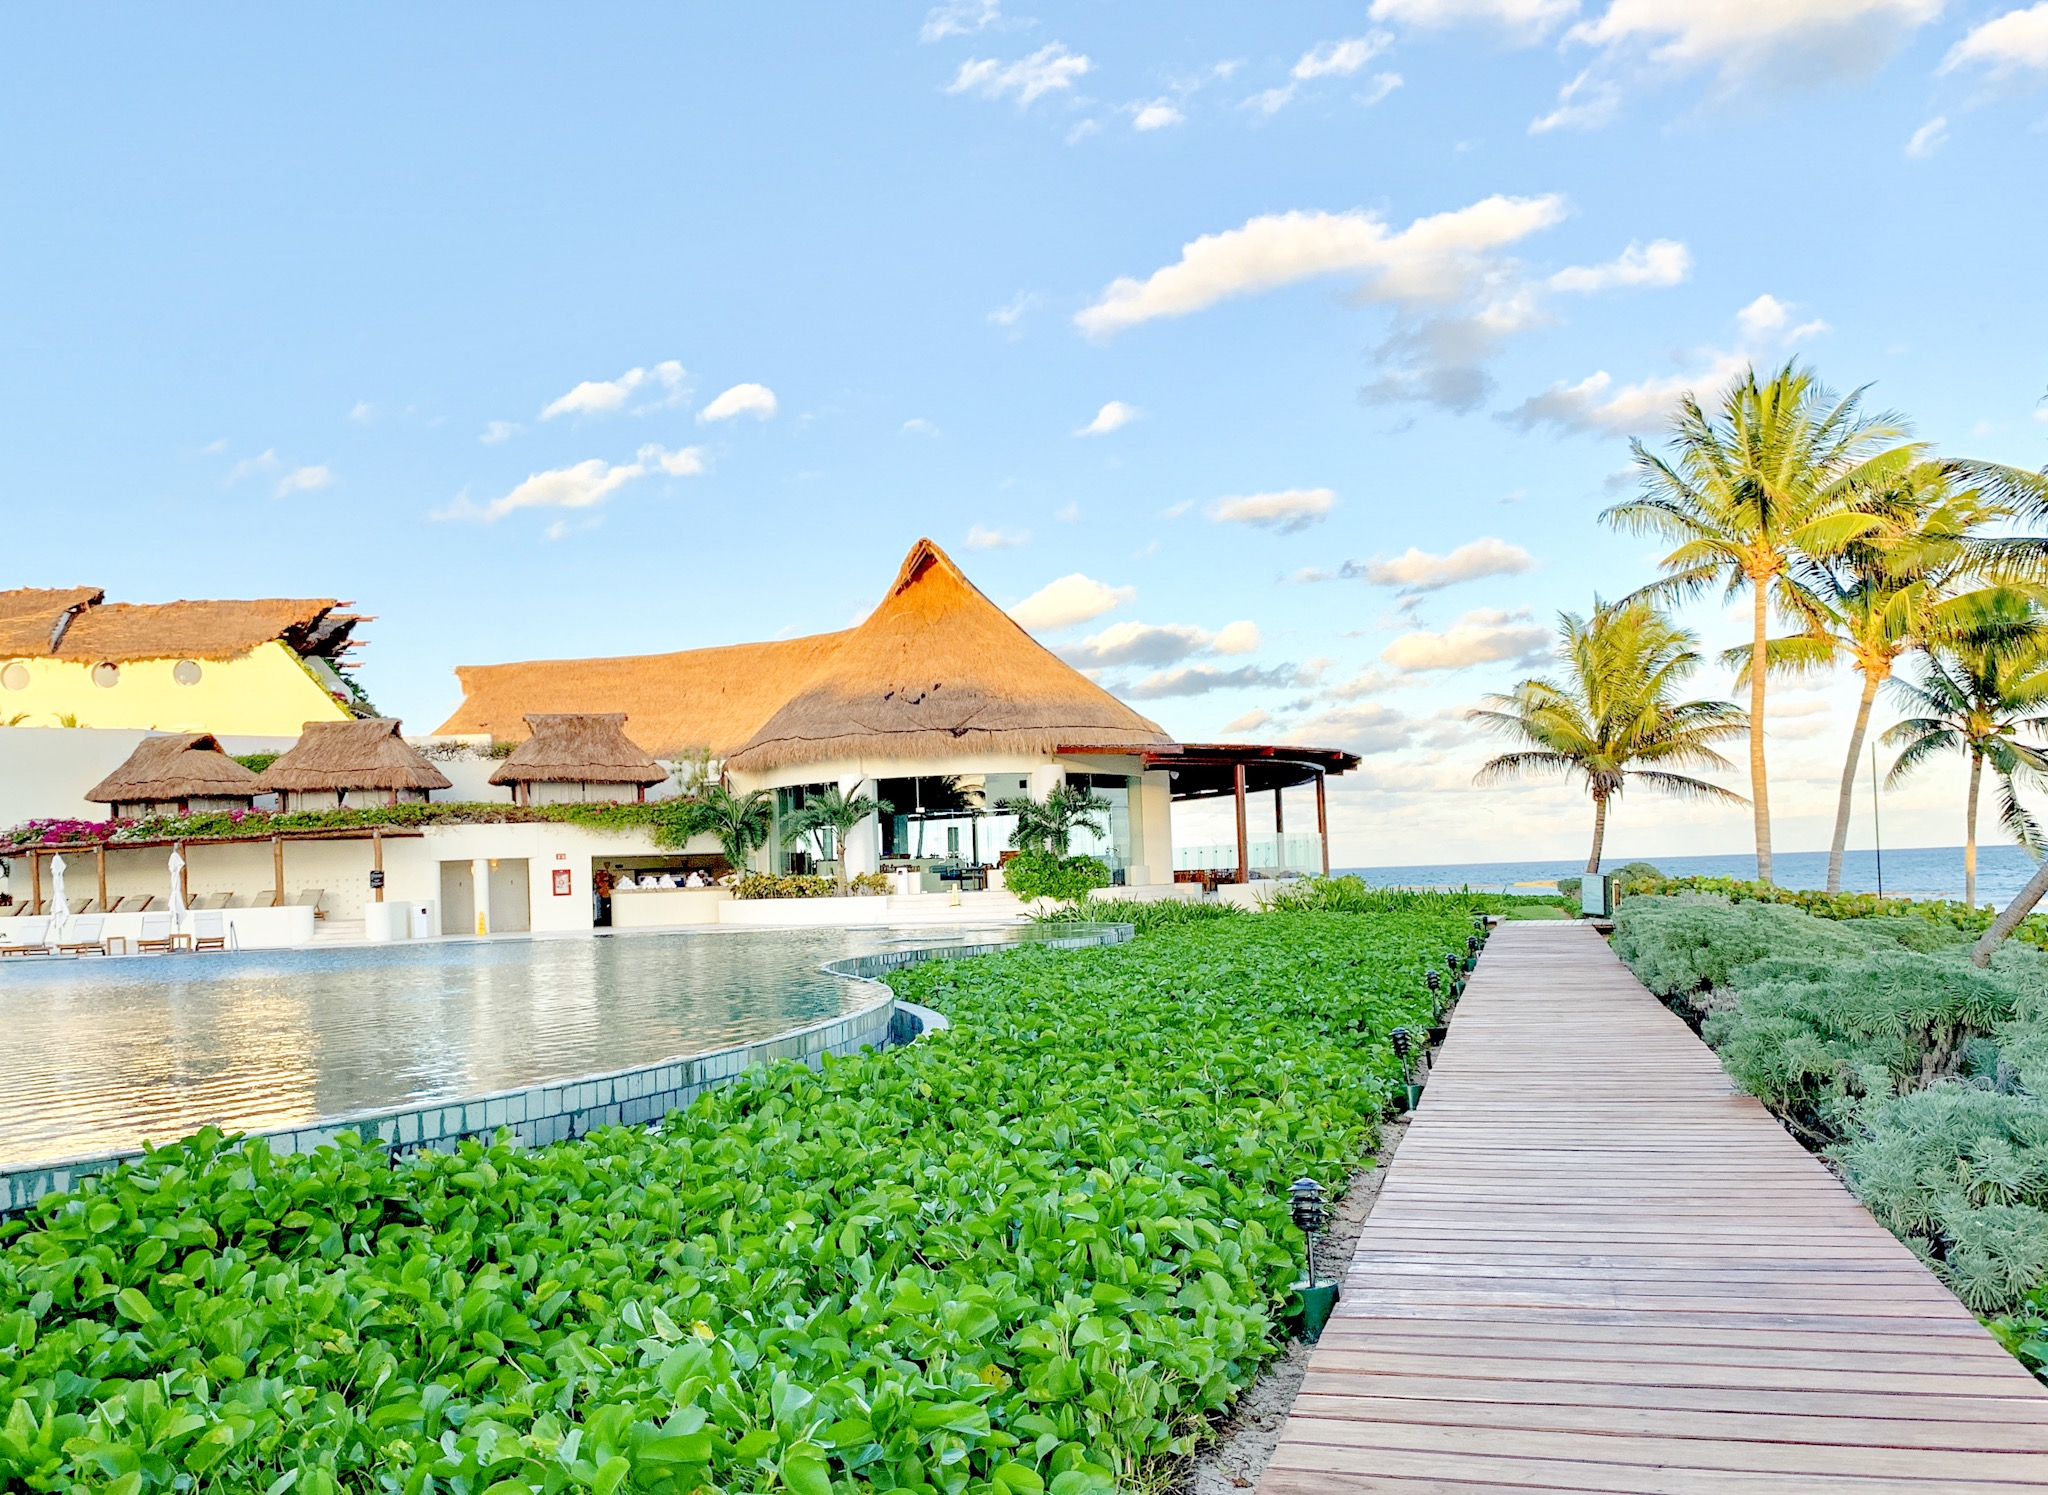 The Ambassador Experience at the Grand Velas Riviera Maya Luxury All- Inclusive Resort and Spa